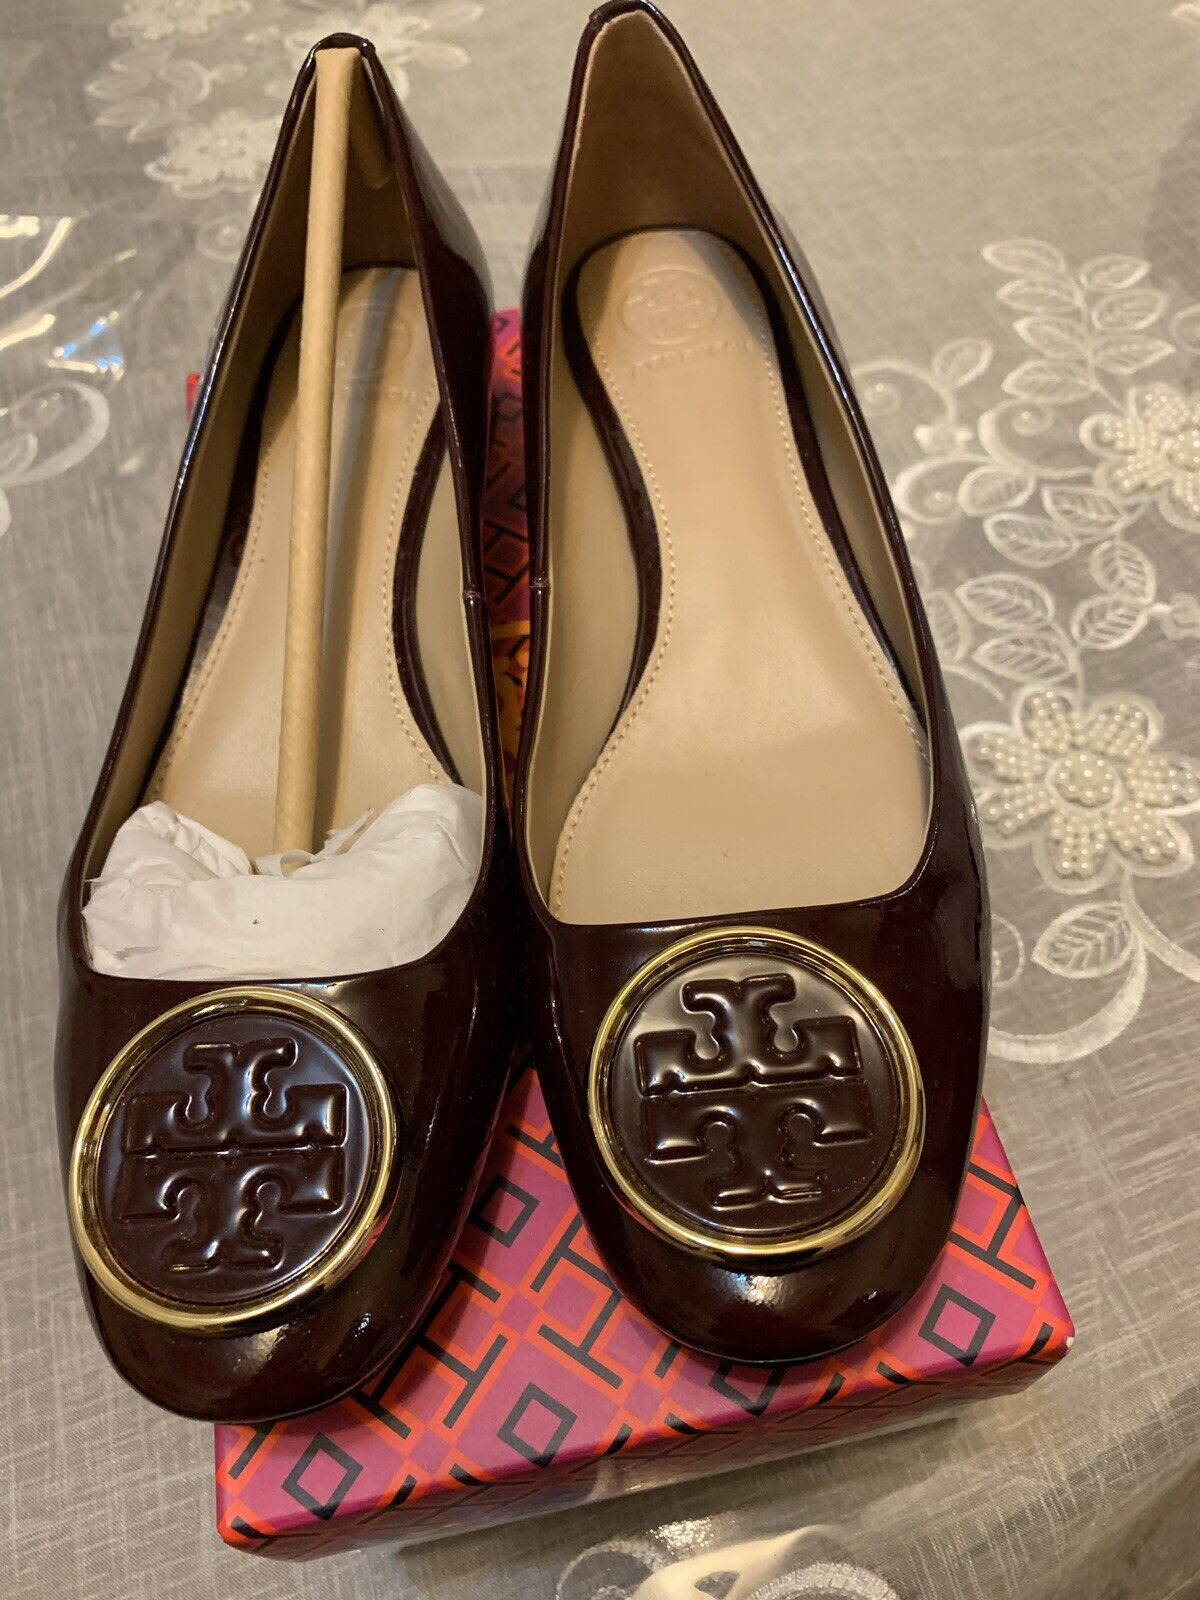 Tory Burch Twiggie Pump In Burgund Patent Leather  Sz 7.5  fantastica qualità